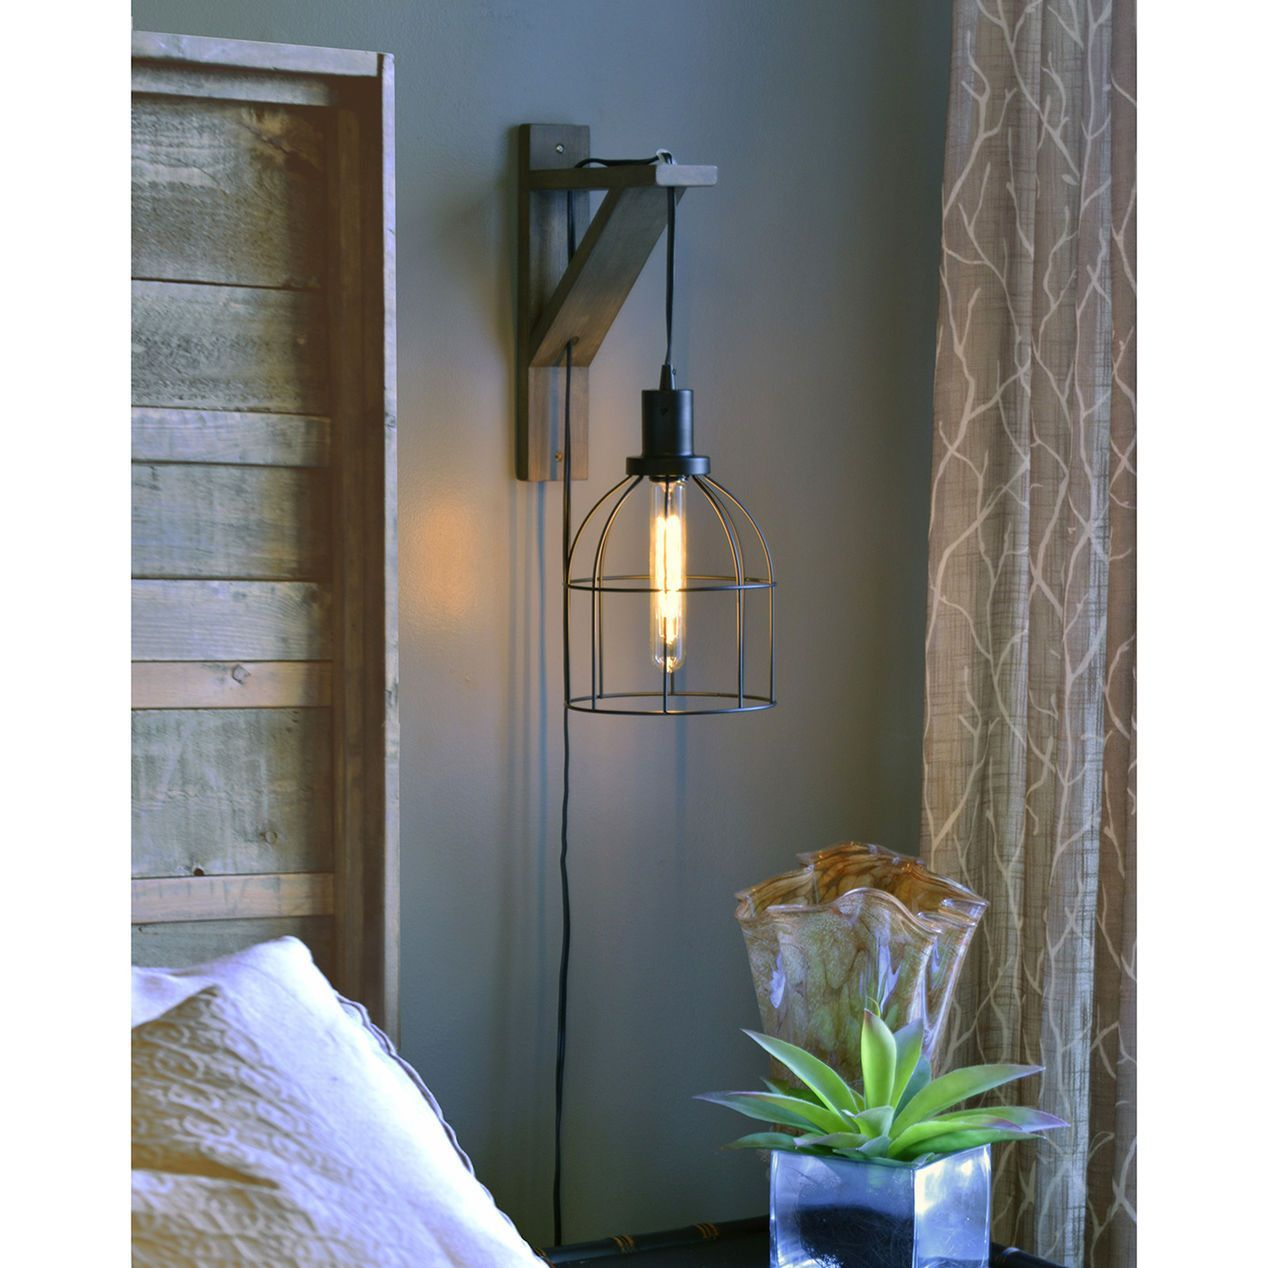 Stunning Diy Outdoor Lighting Ideas For Trees 9768712833 Outdoorgardendecor Wall Mounted Lights Bedroom Wall Lamps Bedroom Metal Corbels